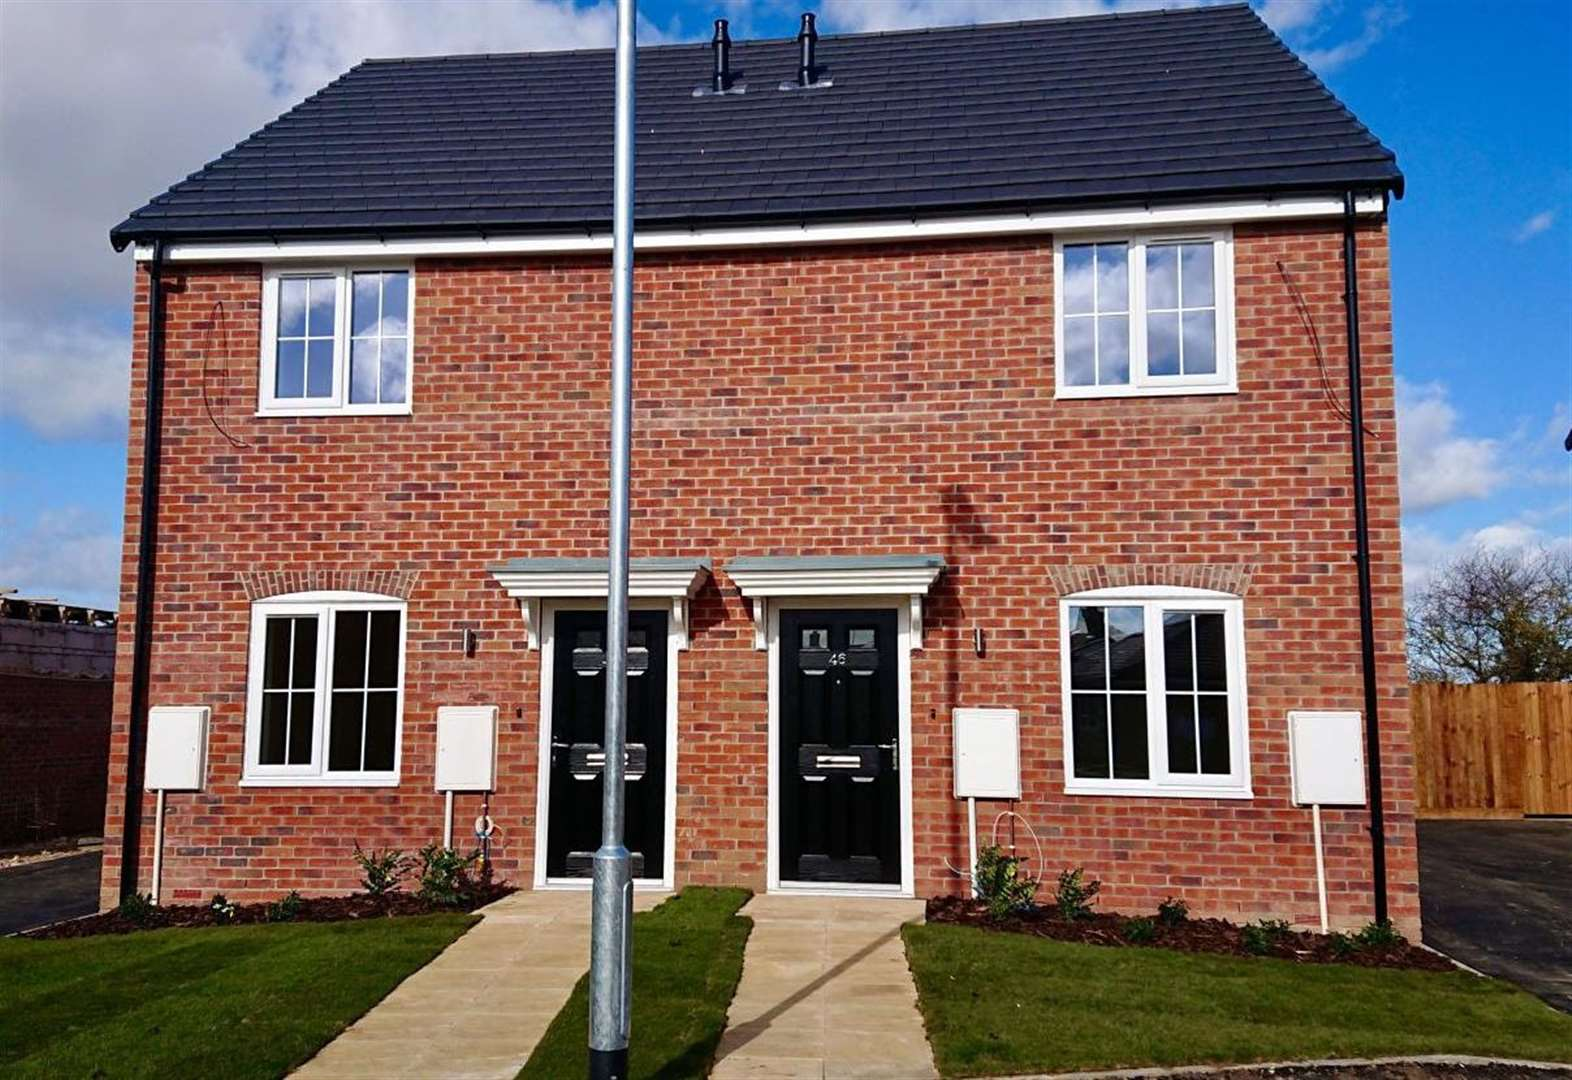 Shared ownership opportunities as 18 new homes secured across South Holland